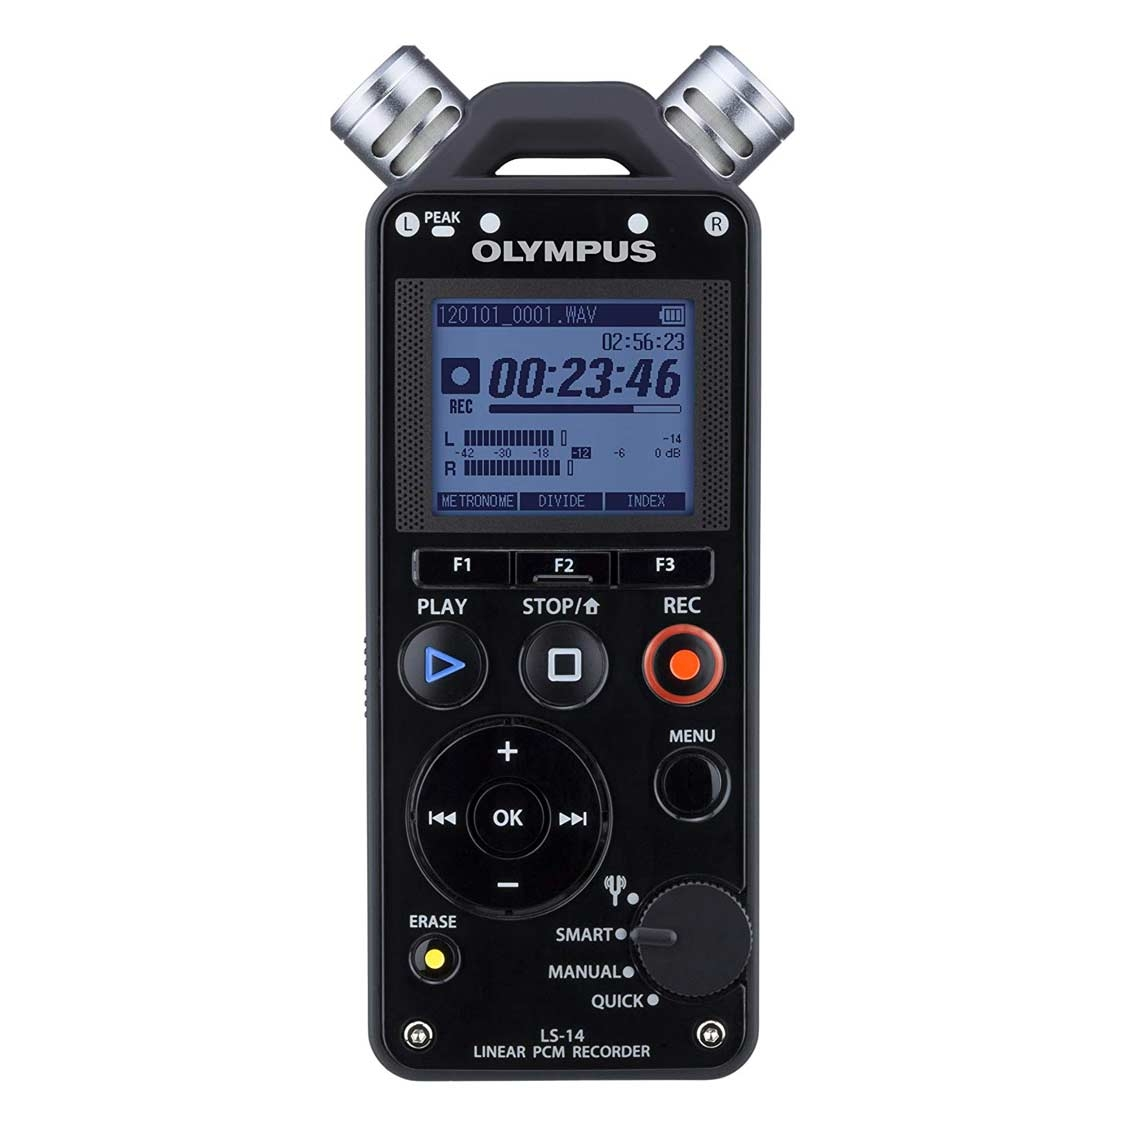 Olympus LS-14 Digital Voice Recorder